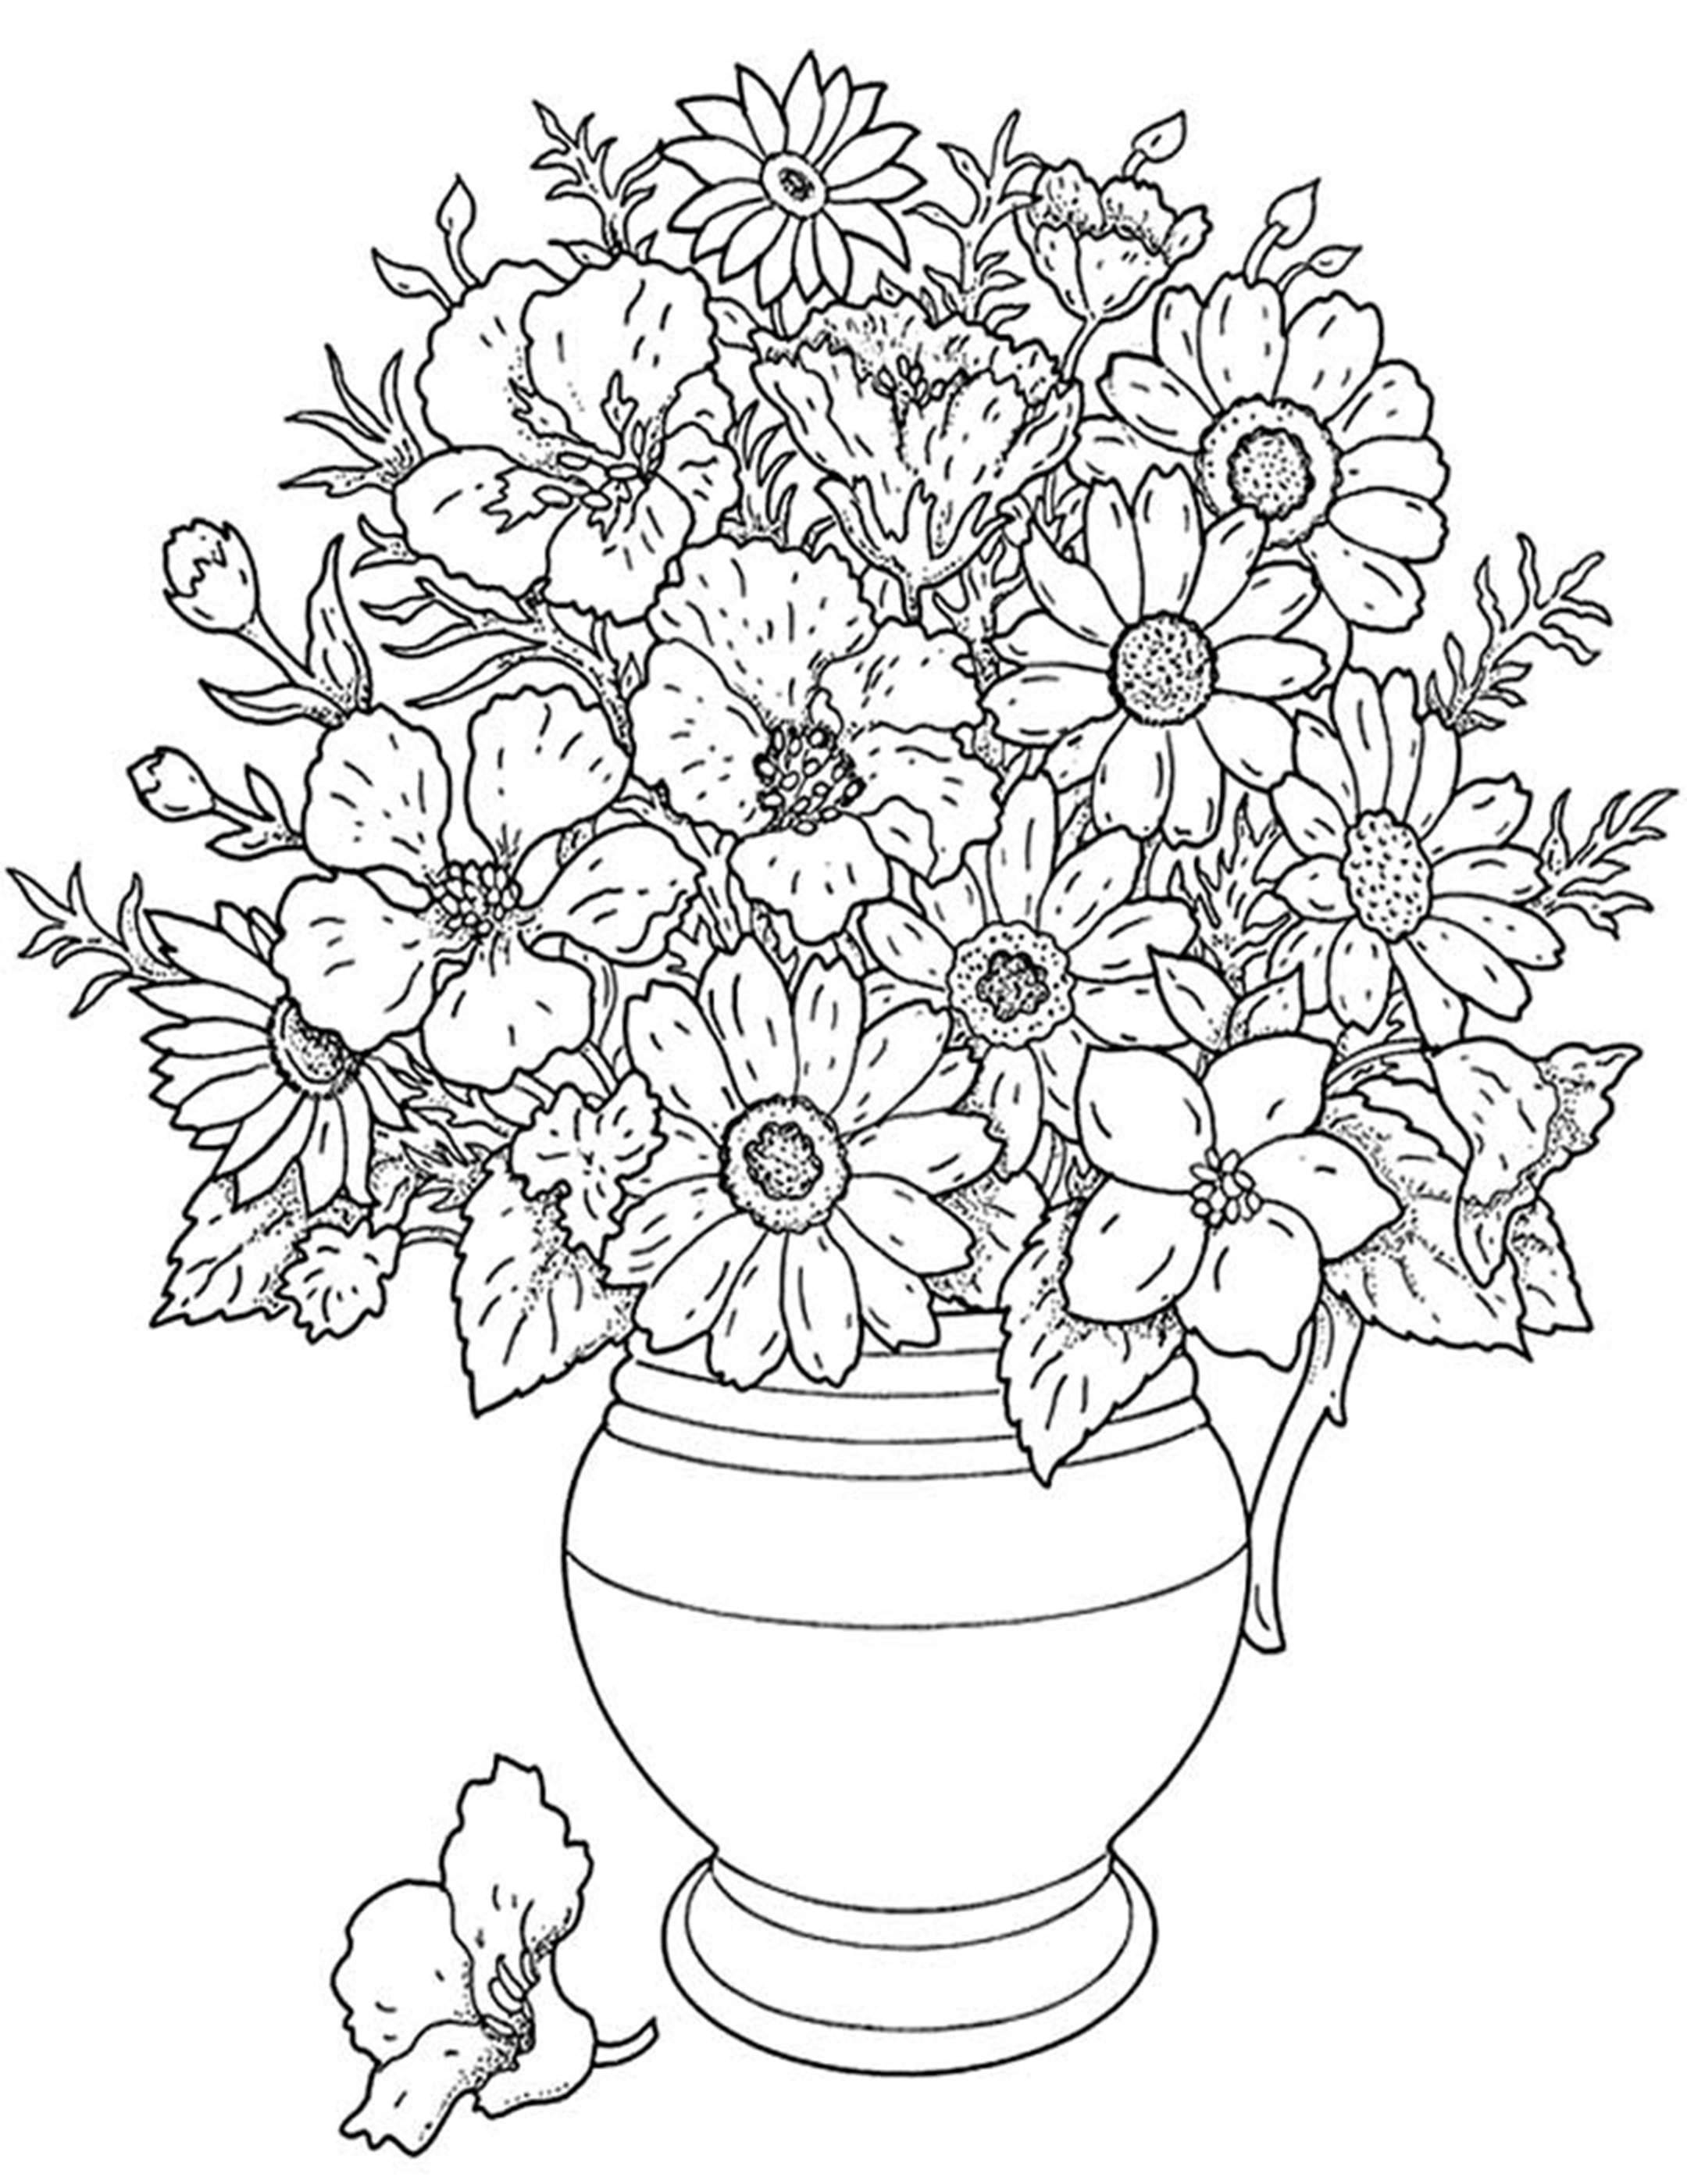 pictures of flowers to color free printables free printable flower coloring pages for kids best pictures color of free to flowers printables